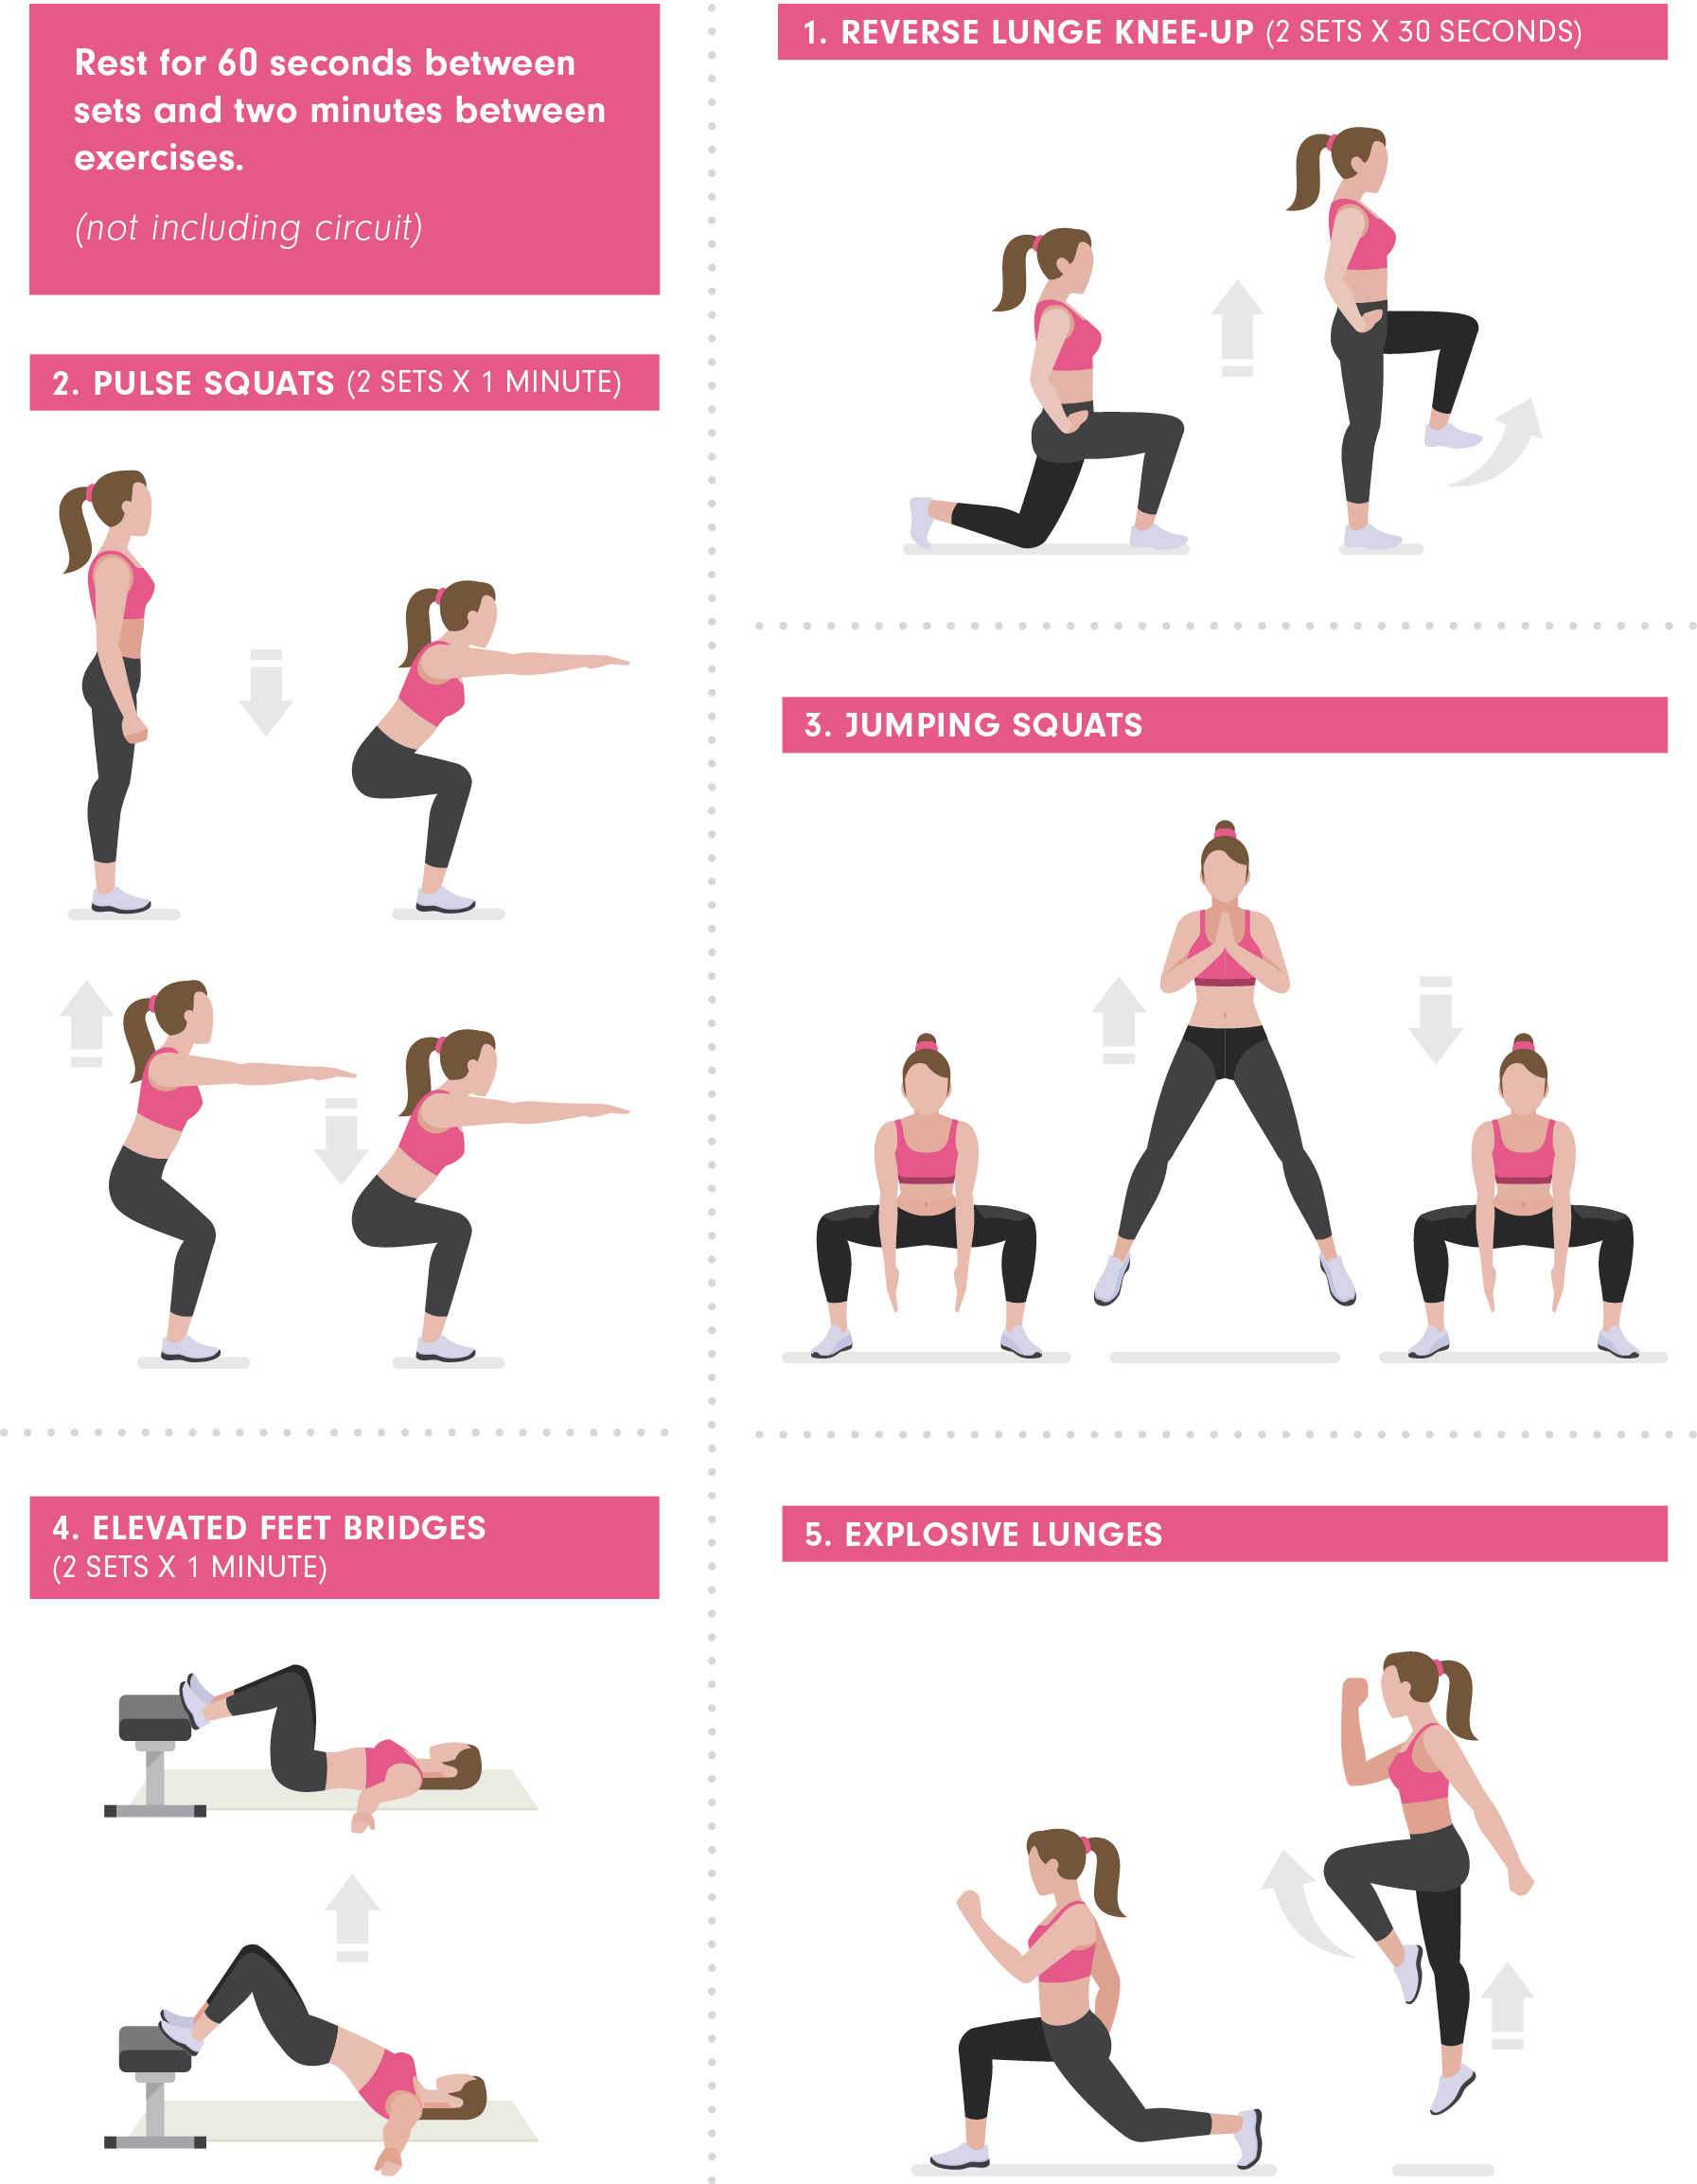 15-Minute Workout with Krissy Cela. Lower body workout: 1. Reverse lunge knee-up (2 sets x 30 seconds) 2. Pulse squats (2 sets x 1 minute) 3. Jumping squats 4. Elevated feet bridges (2 sets x 1 minute) 5. Explosive lunges